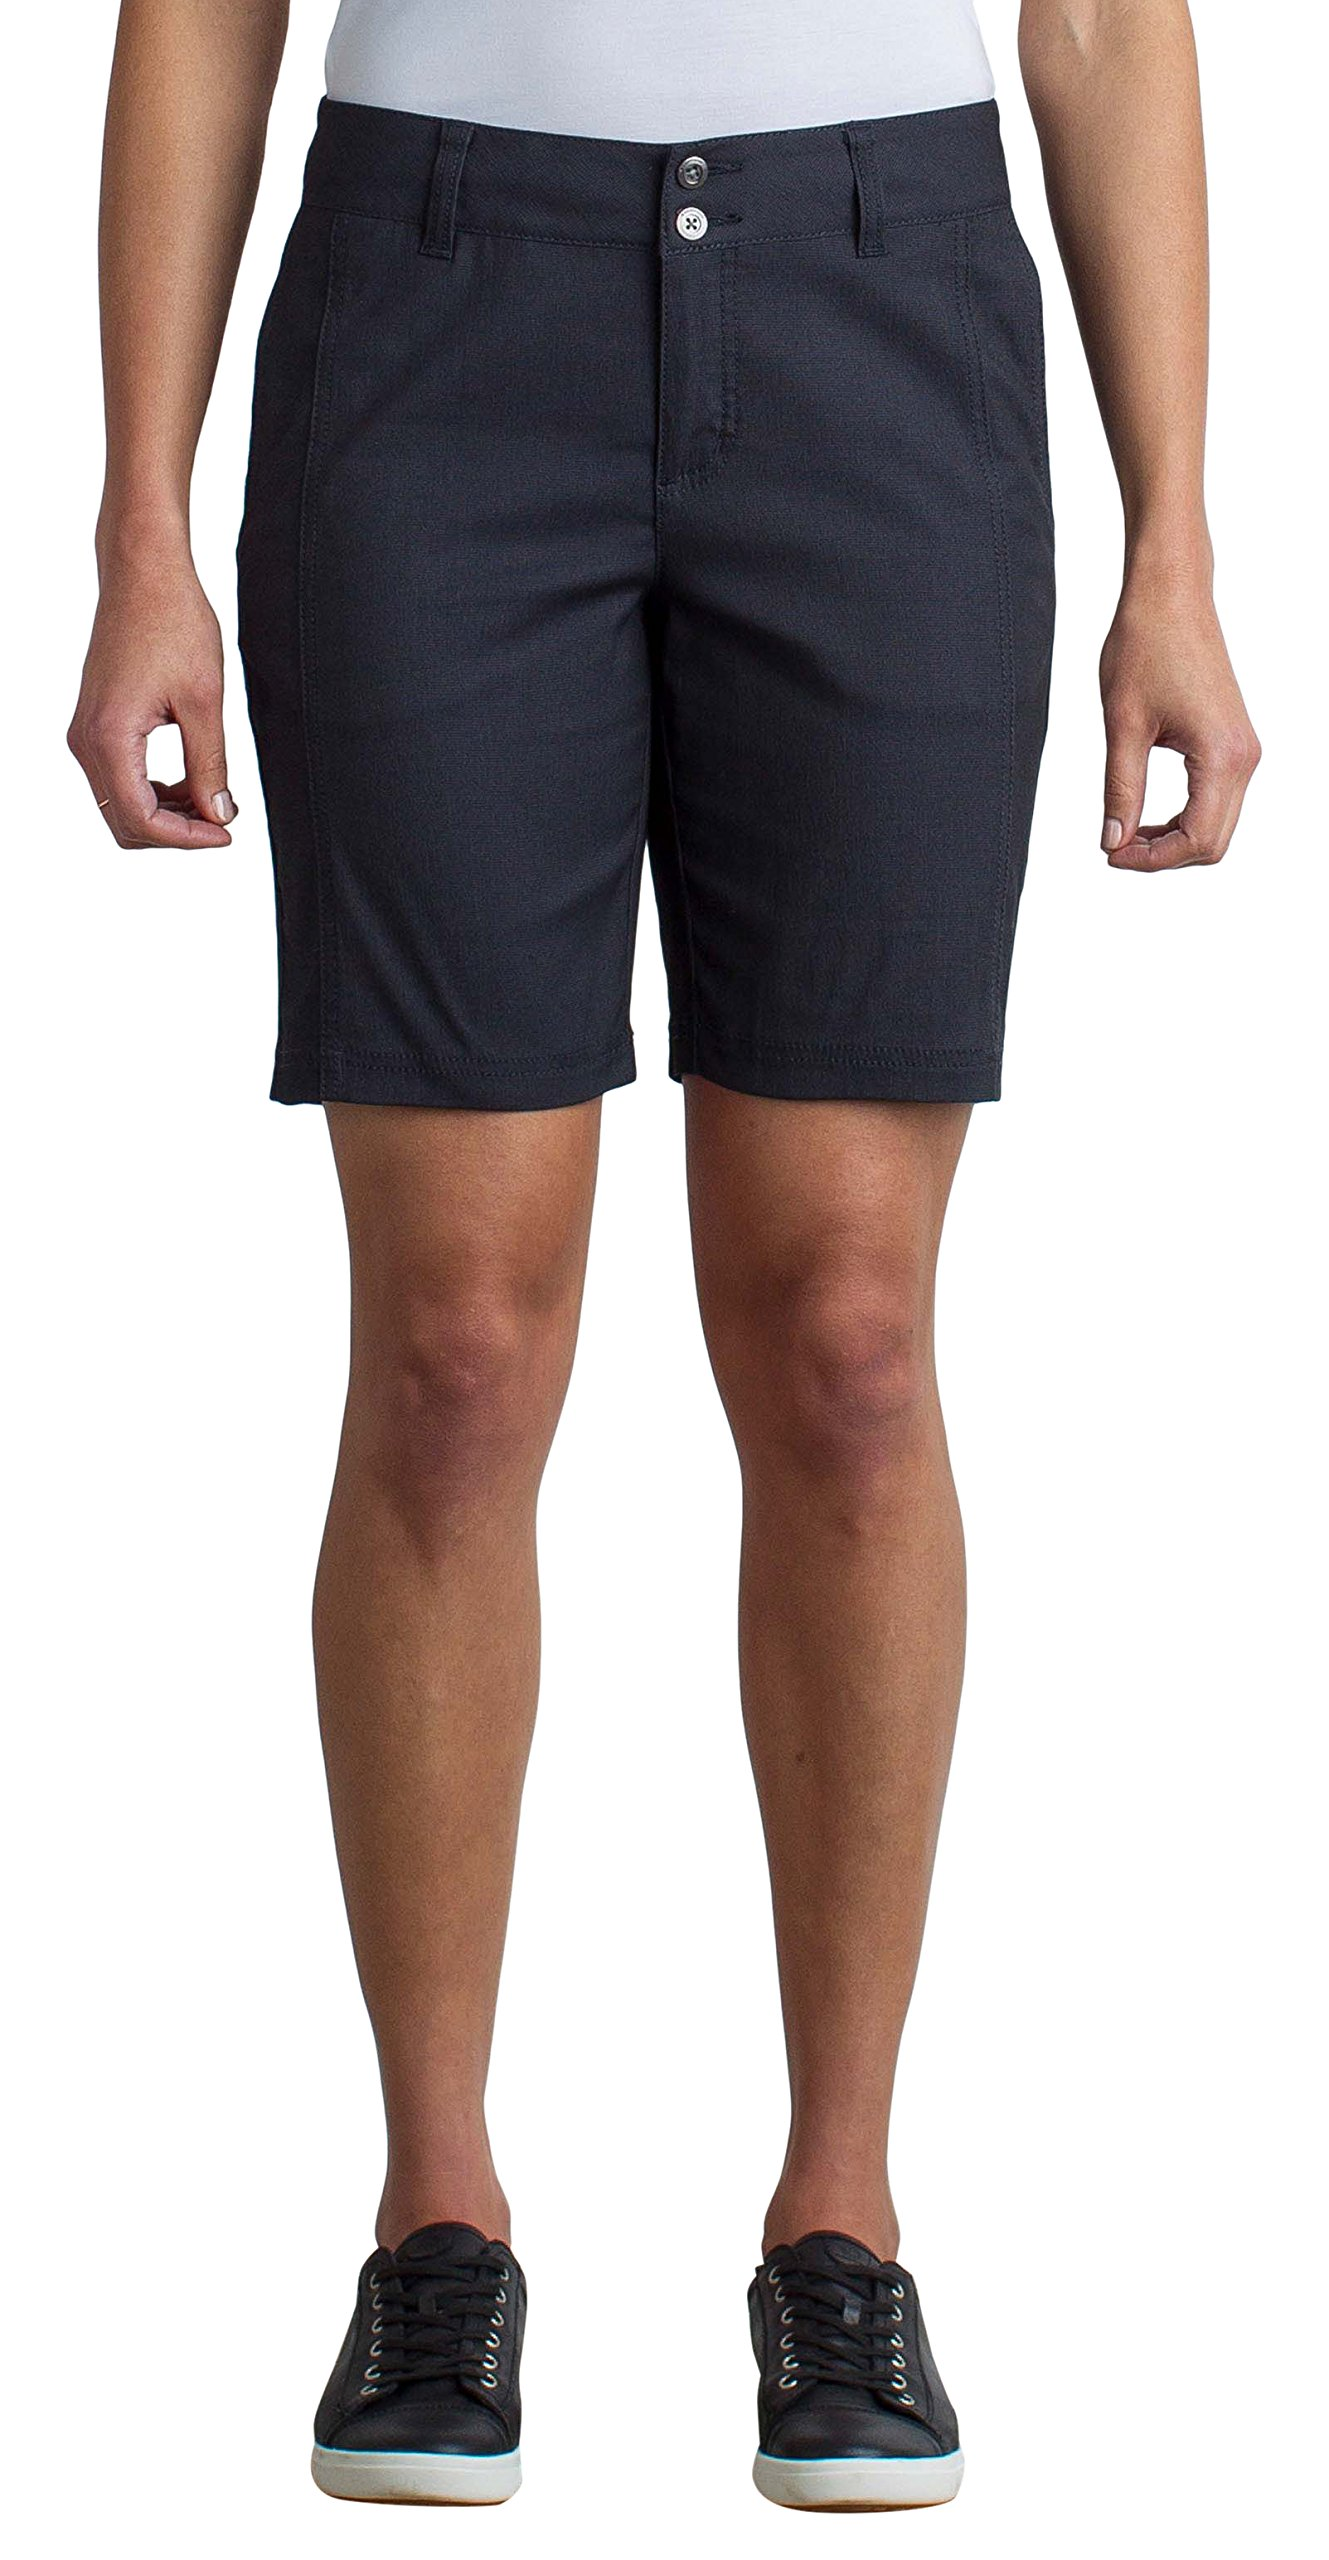 ExOfficio Women's Costera Lightweight Bermuda Shorts, Carbon, Size 8 by ExOfficio